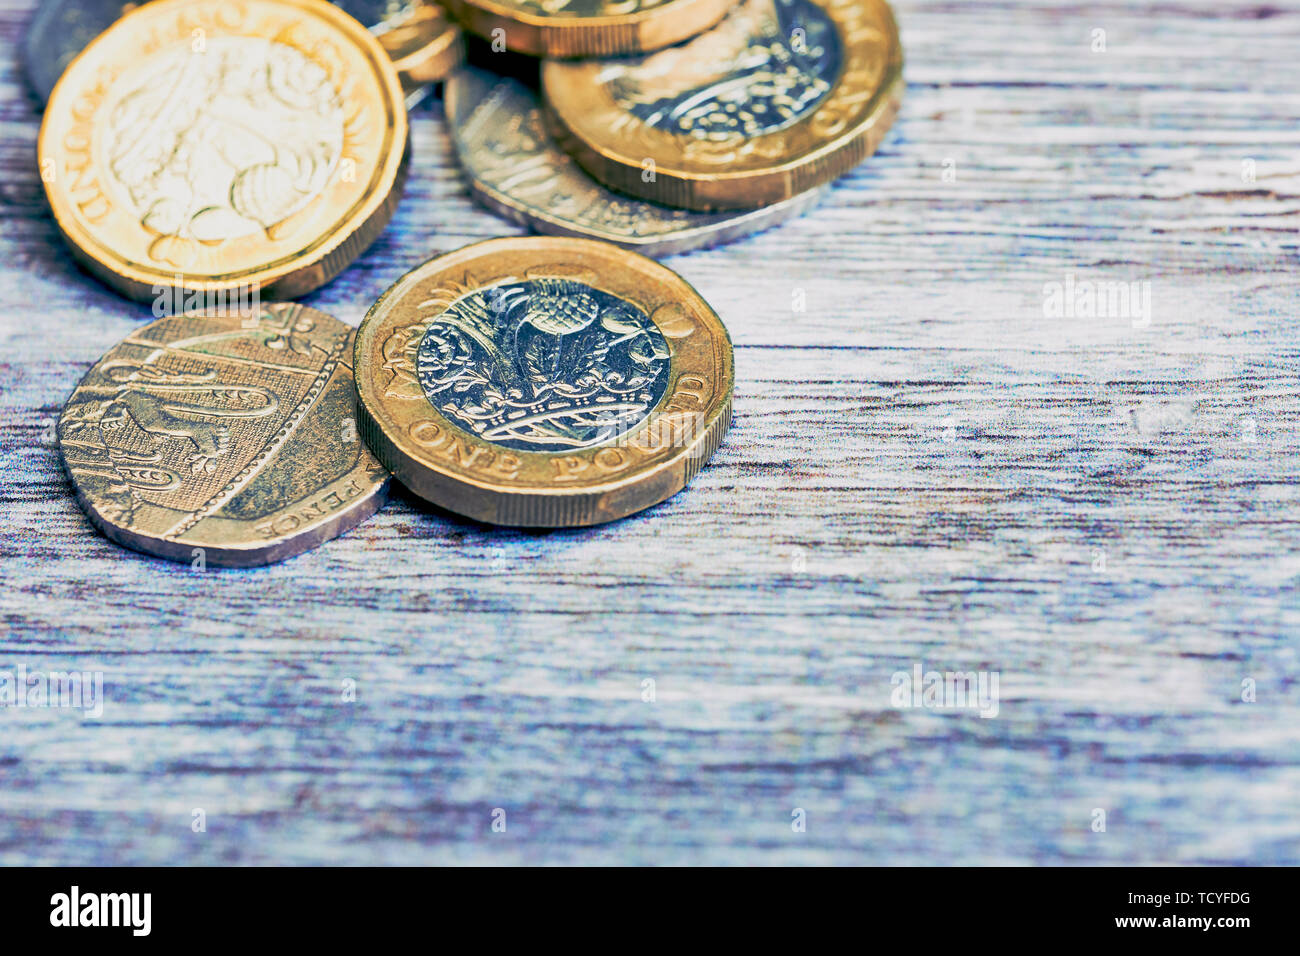 macro of British one pound sterling coins in cold color style on wooden surface - Stock Image